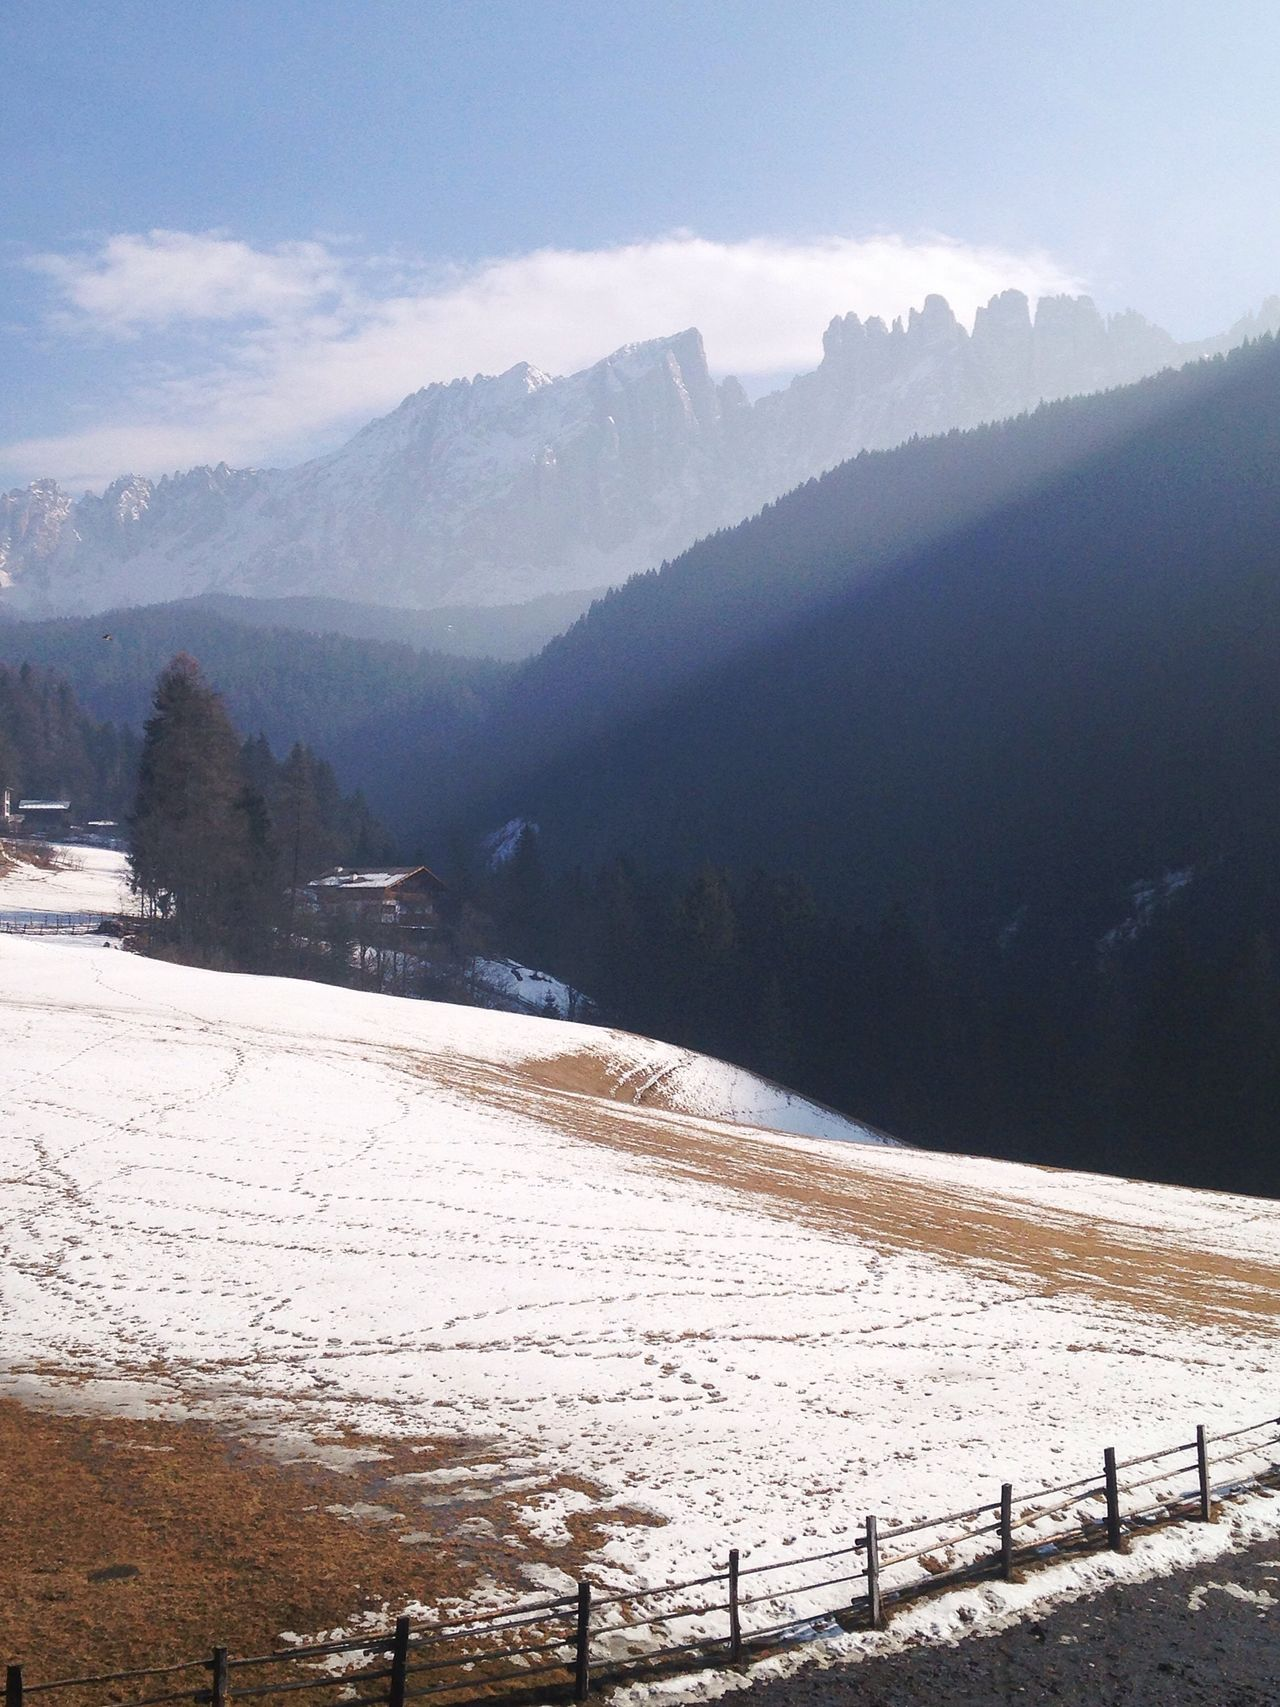 54/365 2017 February 23 One Year Project Welschnofen Nova Levante South Tyrol Trentino Alto Adige Italy Latemar Cold Temperature Snow Winter Mountain Tranquility Tranquil Scene Scenics Beauty In Nature Nature Landscape Mountain Range No People Day Sky Outdoors